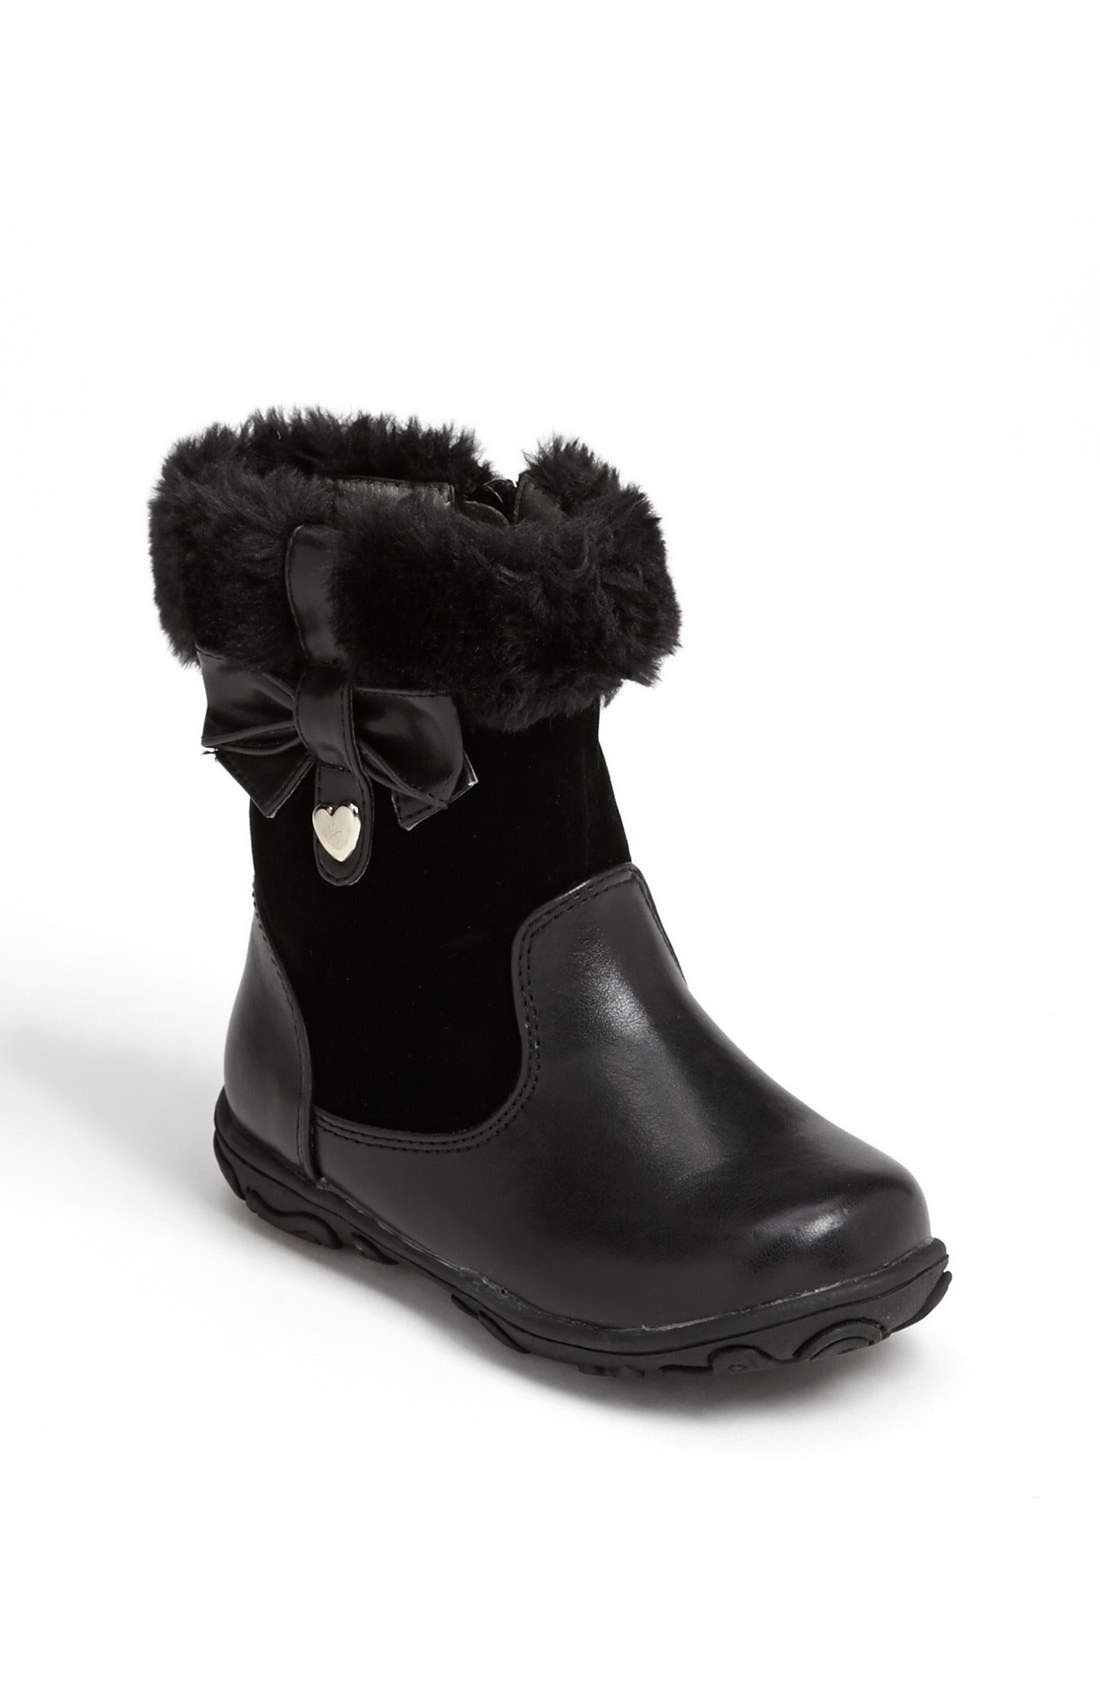 Main Image - Laura Ashley 'Bow' Boot (Walker & Toddler)